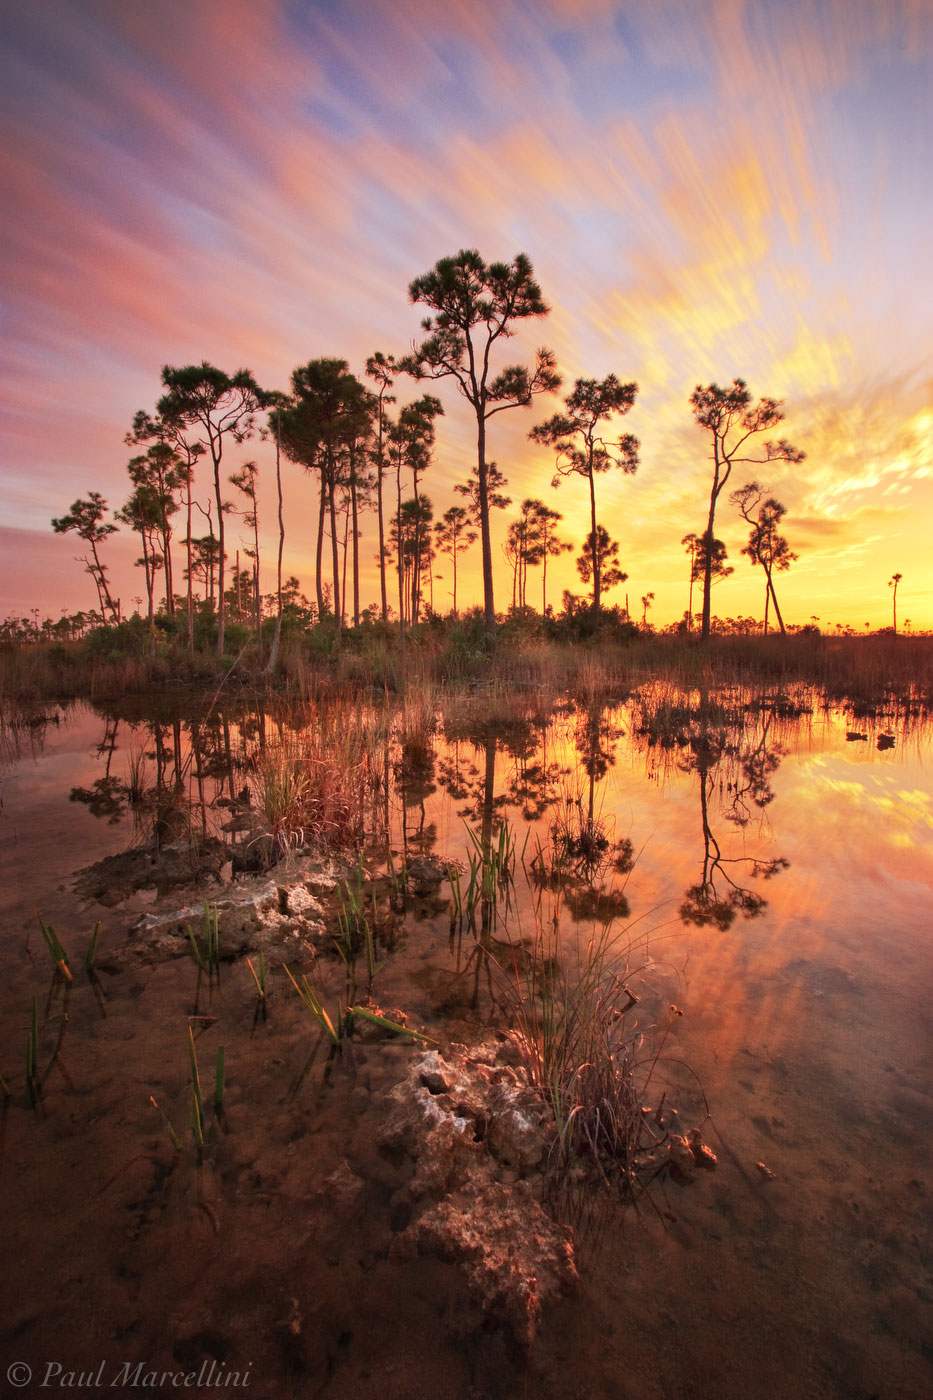 wet season, everglades, pines, sunset, Florida, nature, photography, florida national parks, photo